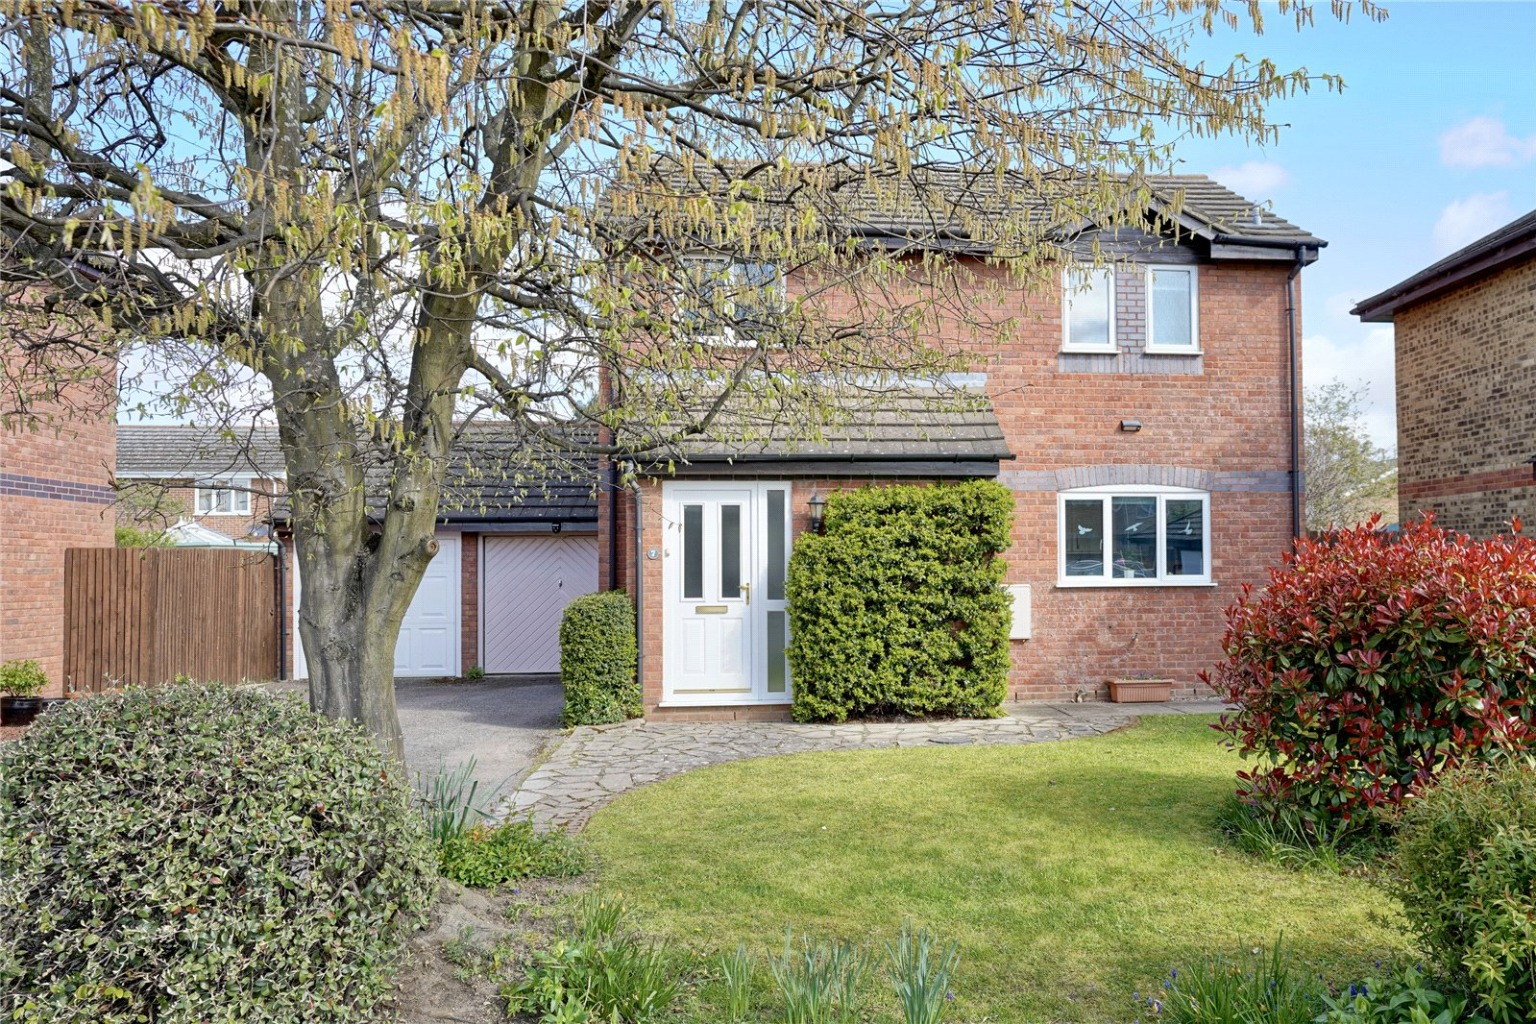 3 bed detached house for sale in Tintagel Court, St. Neots - Property Image 1